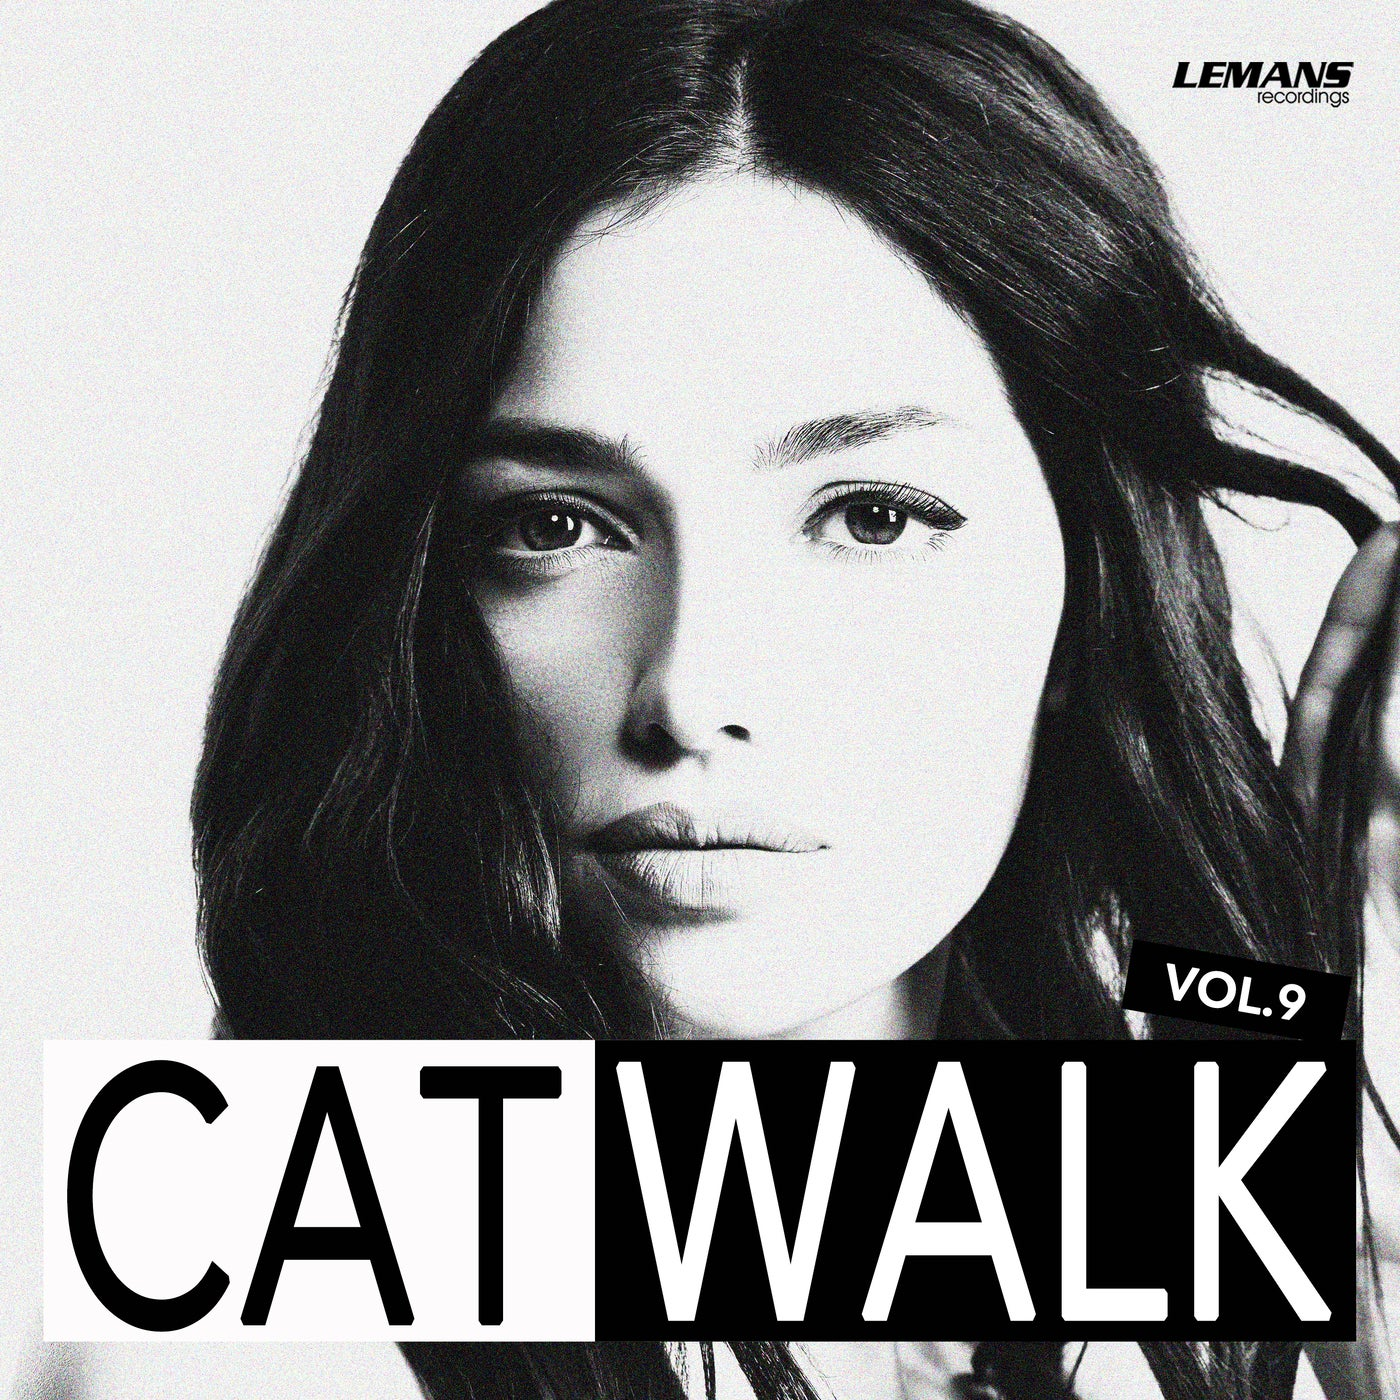 Catwalk, Vol. 9